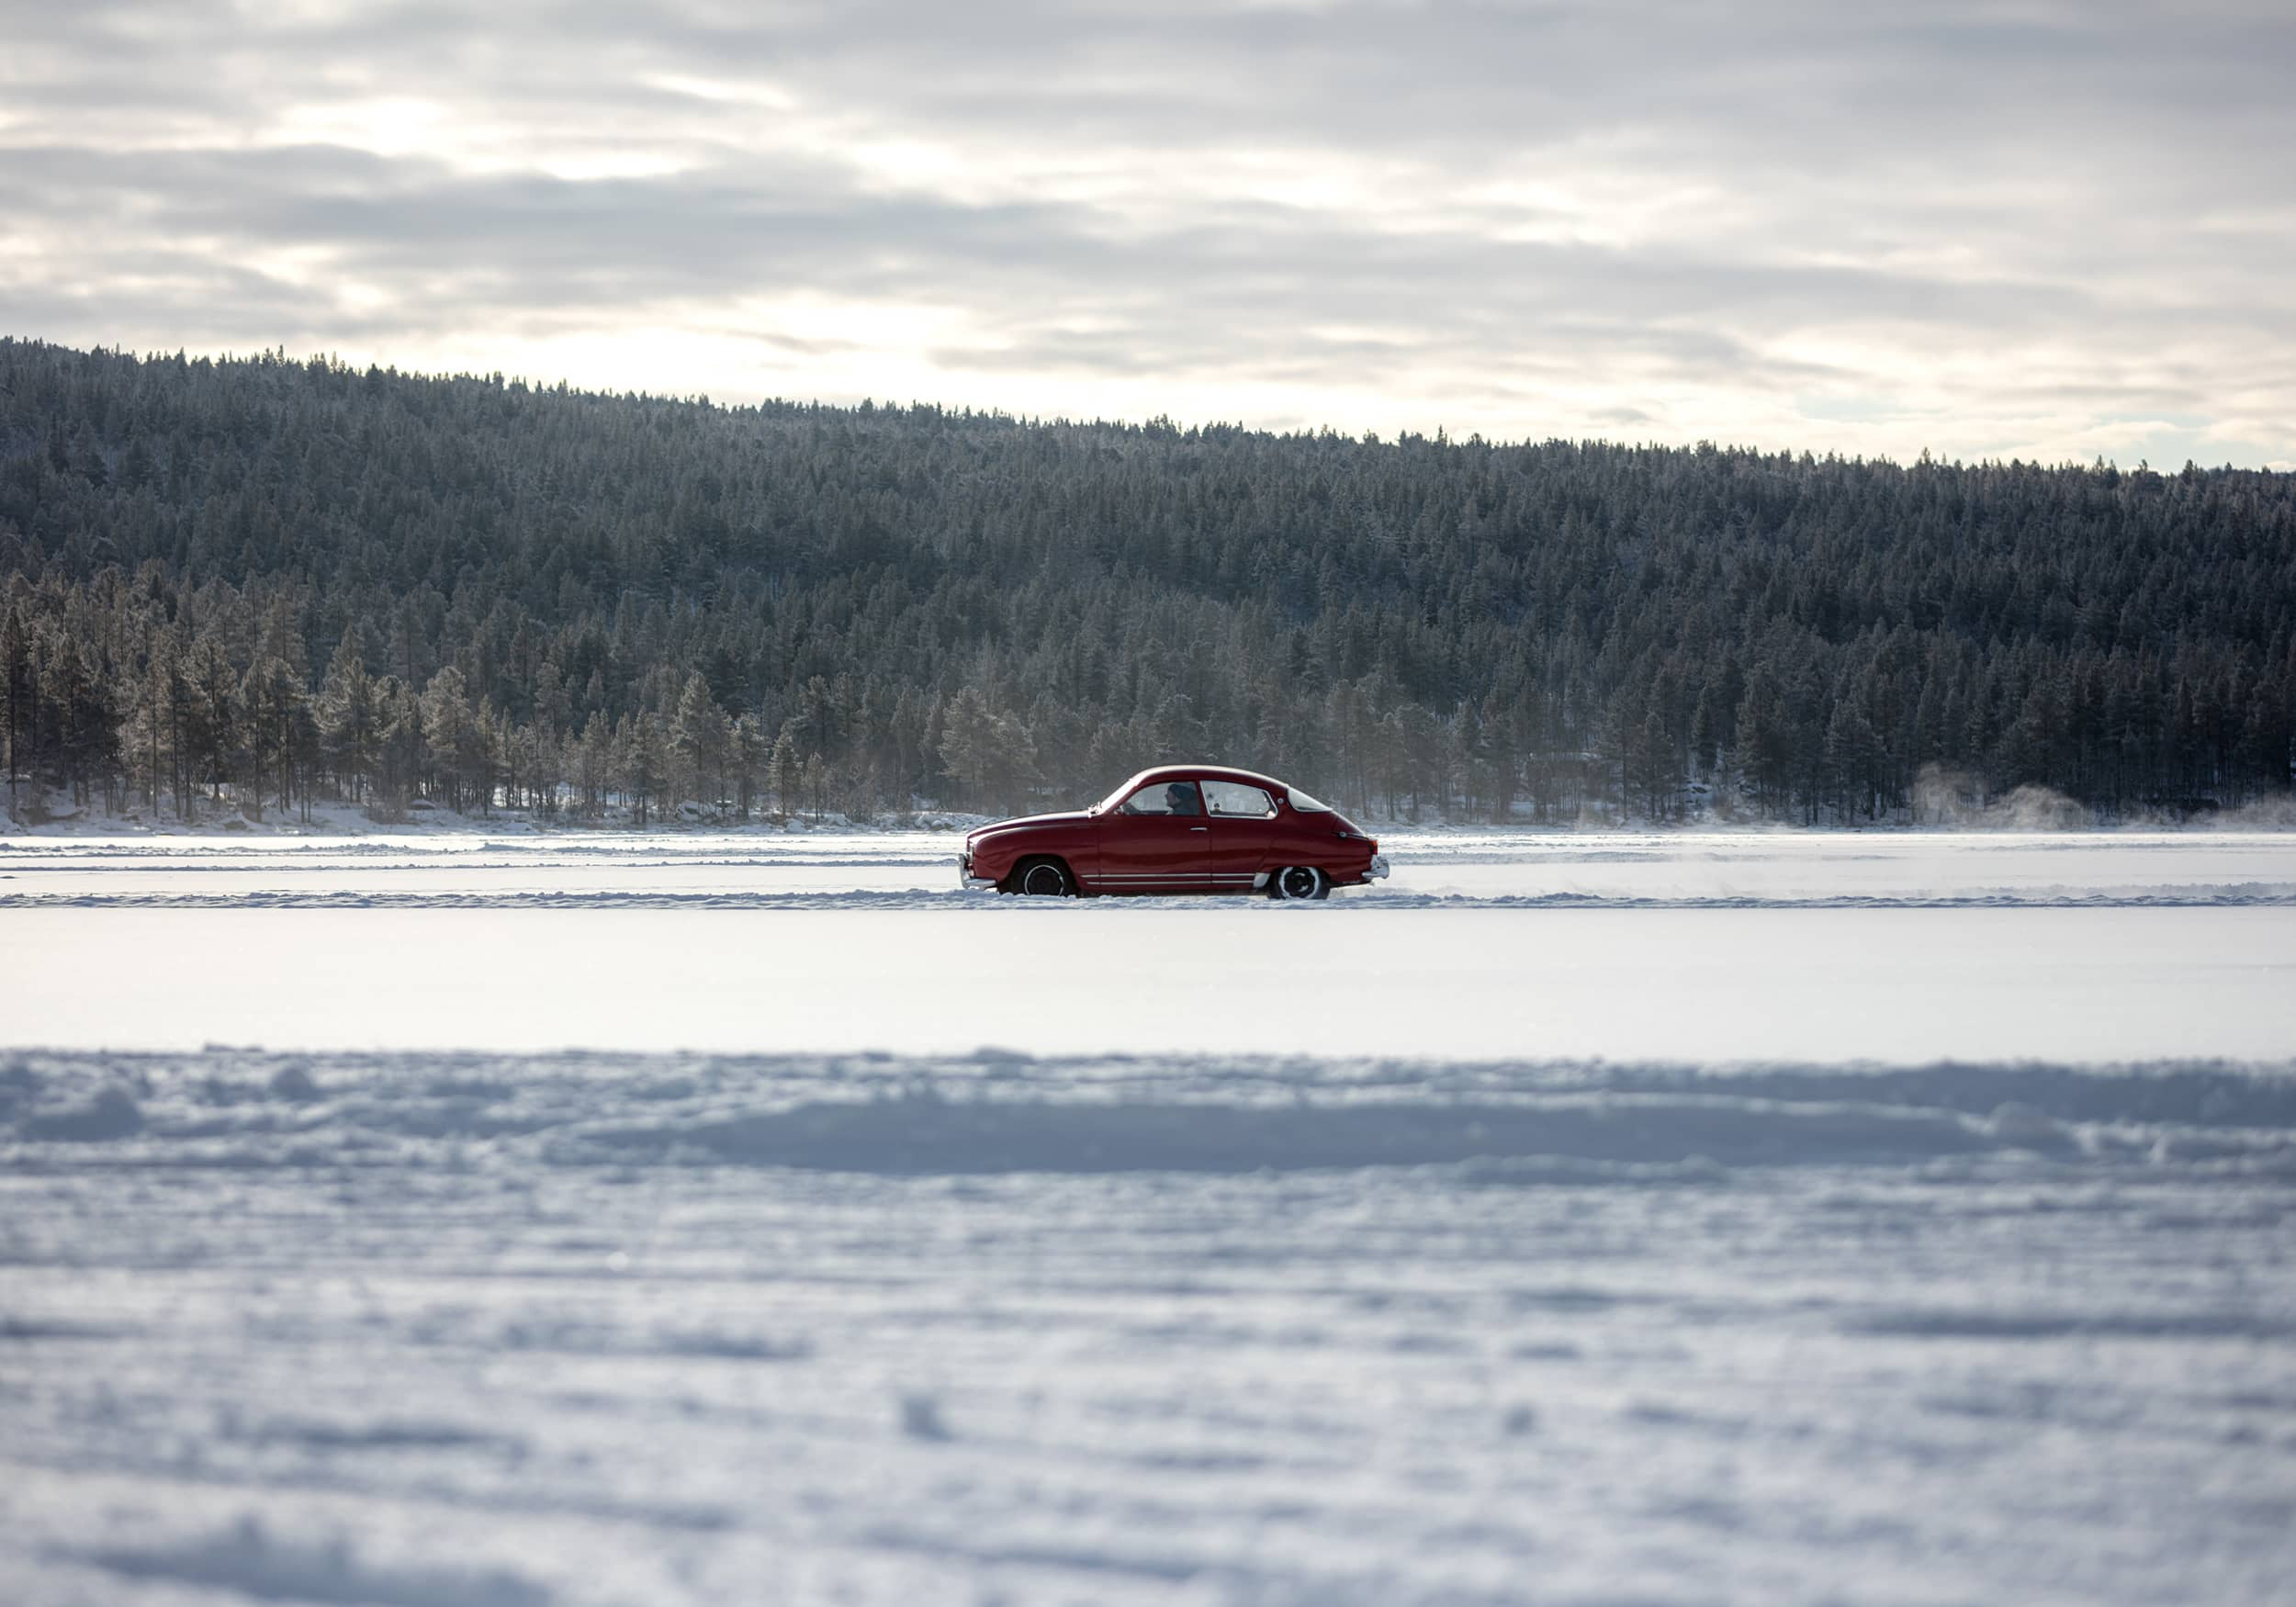 Kimm Saatvedt – SAAB ice-rally with GSV